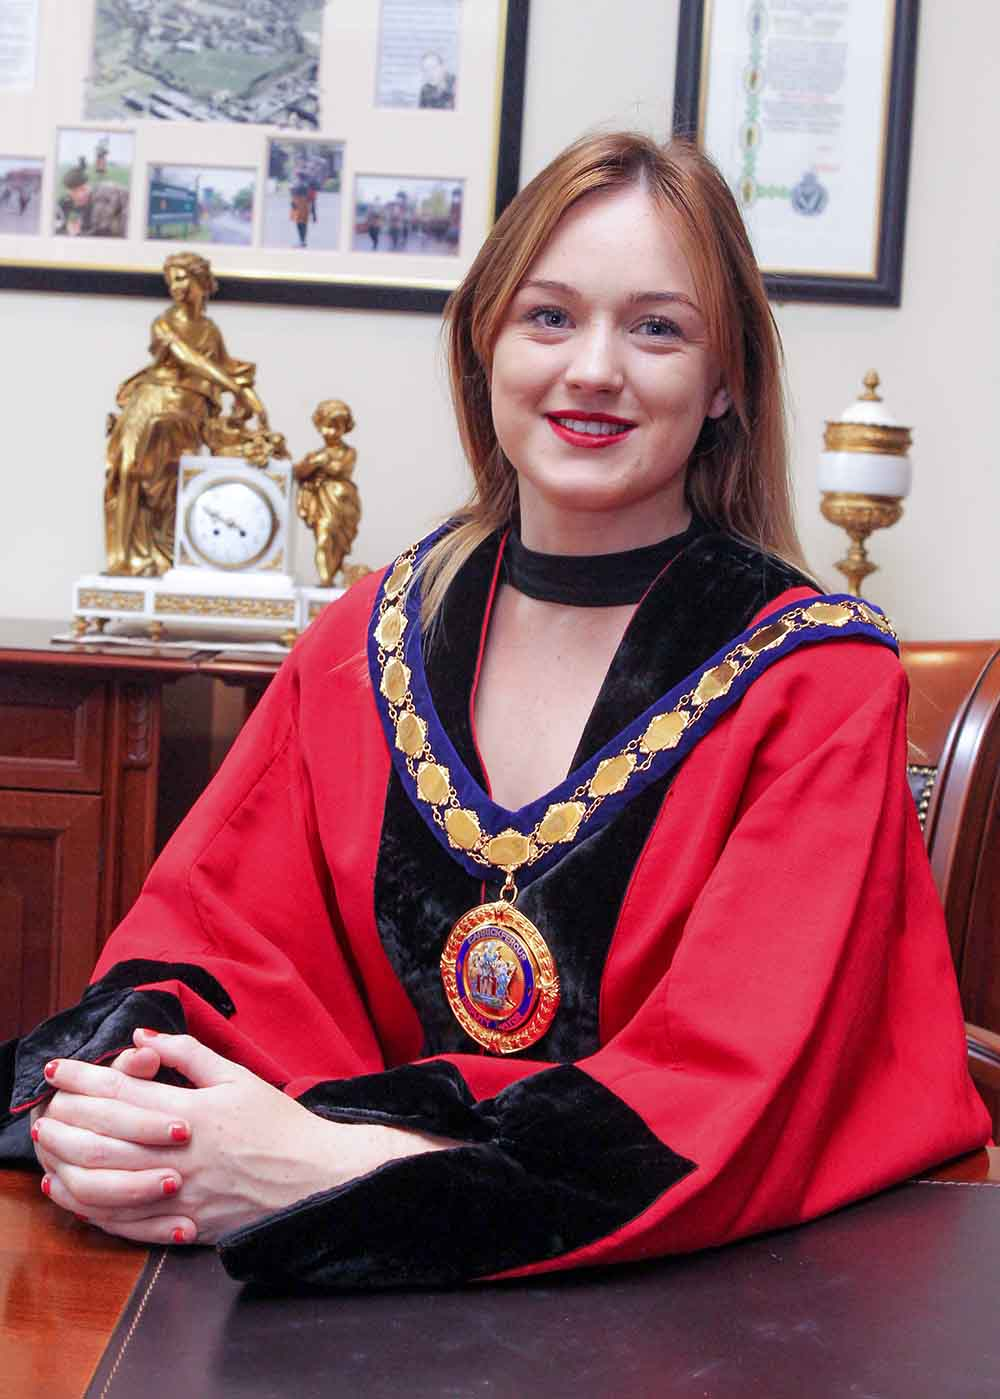 Deputy Mayor of Mid and East Antrim Borough, Councillor Cheryl Johnston